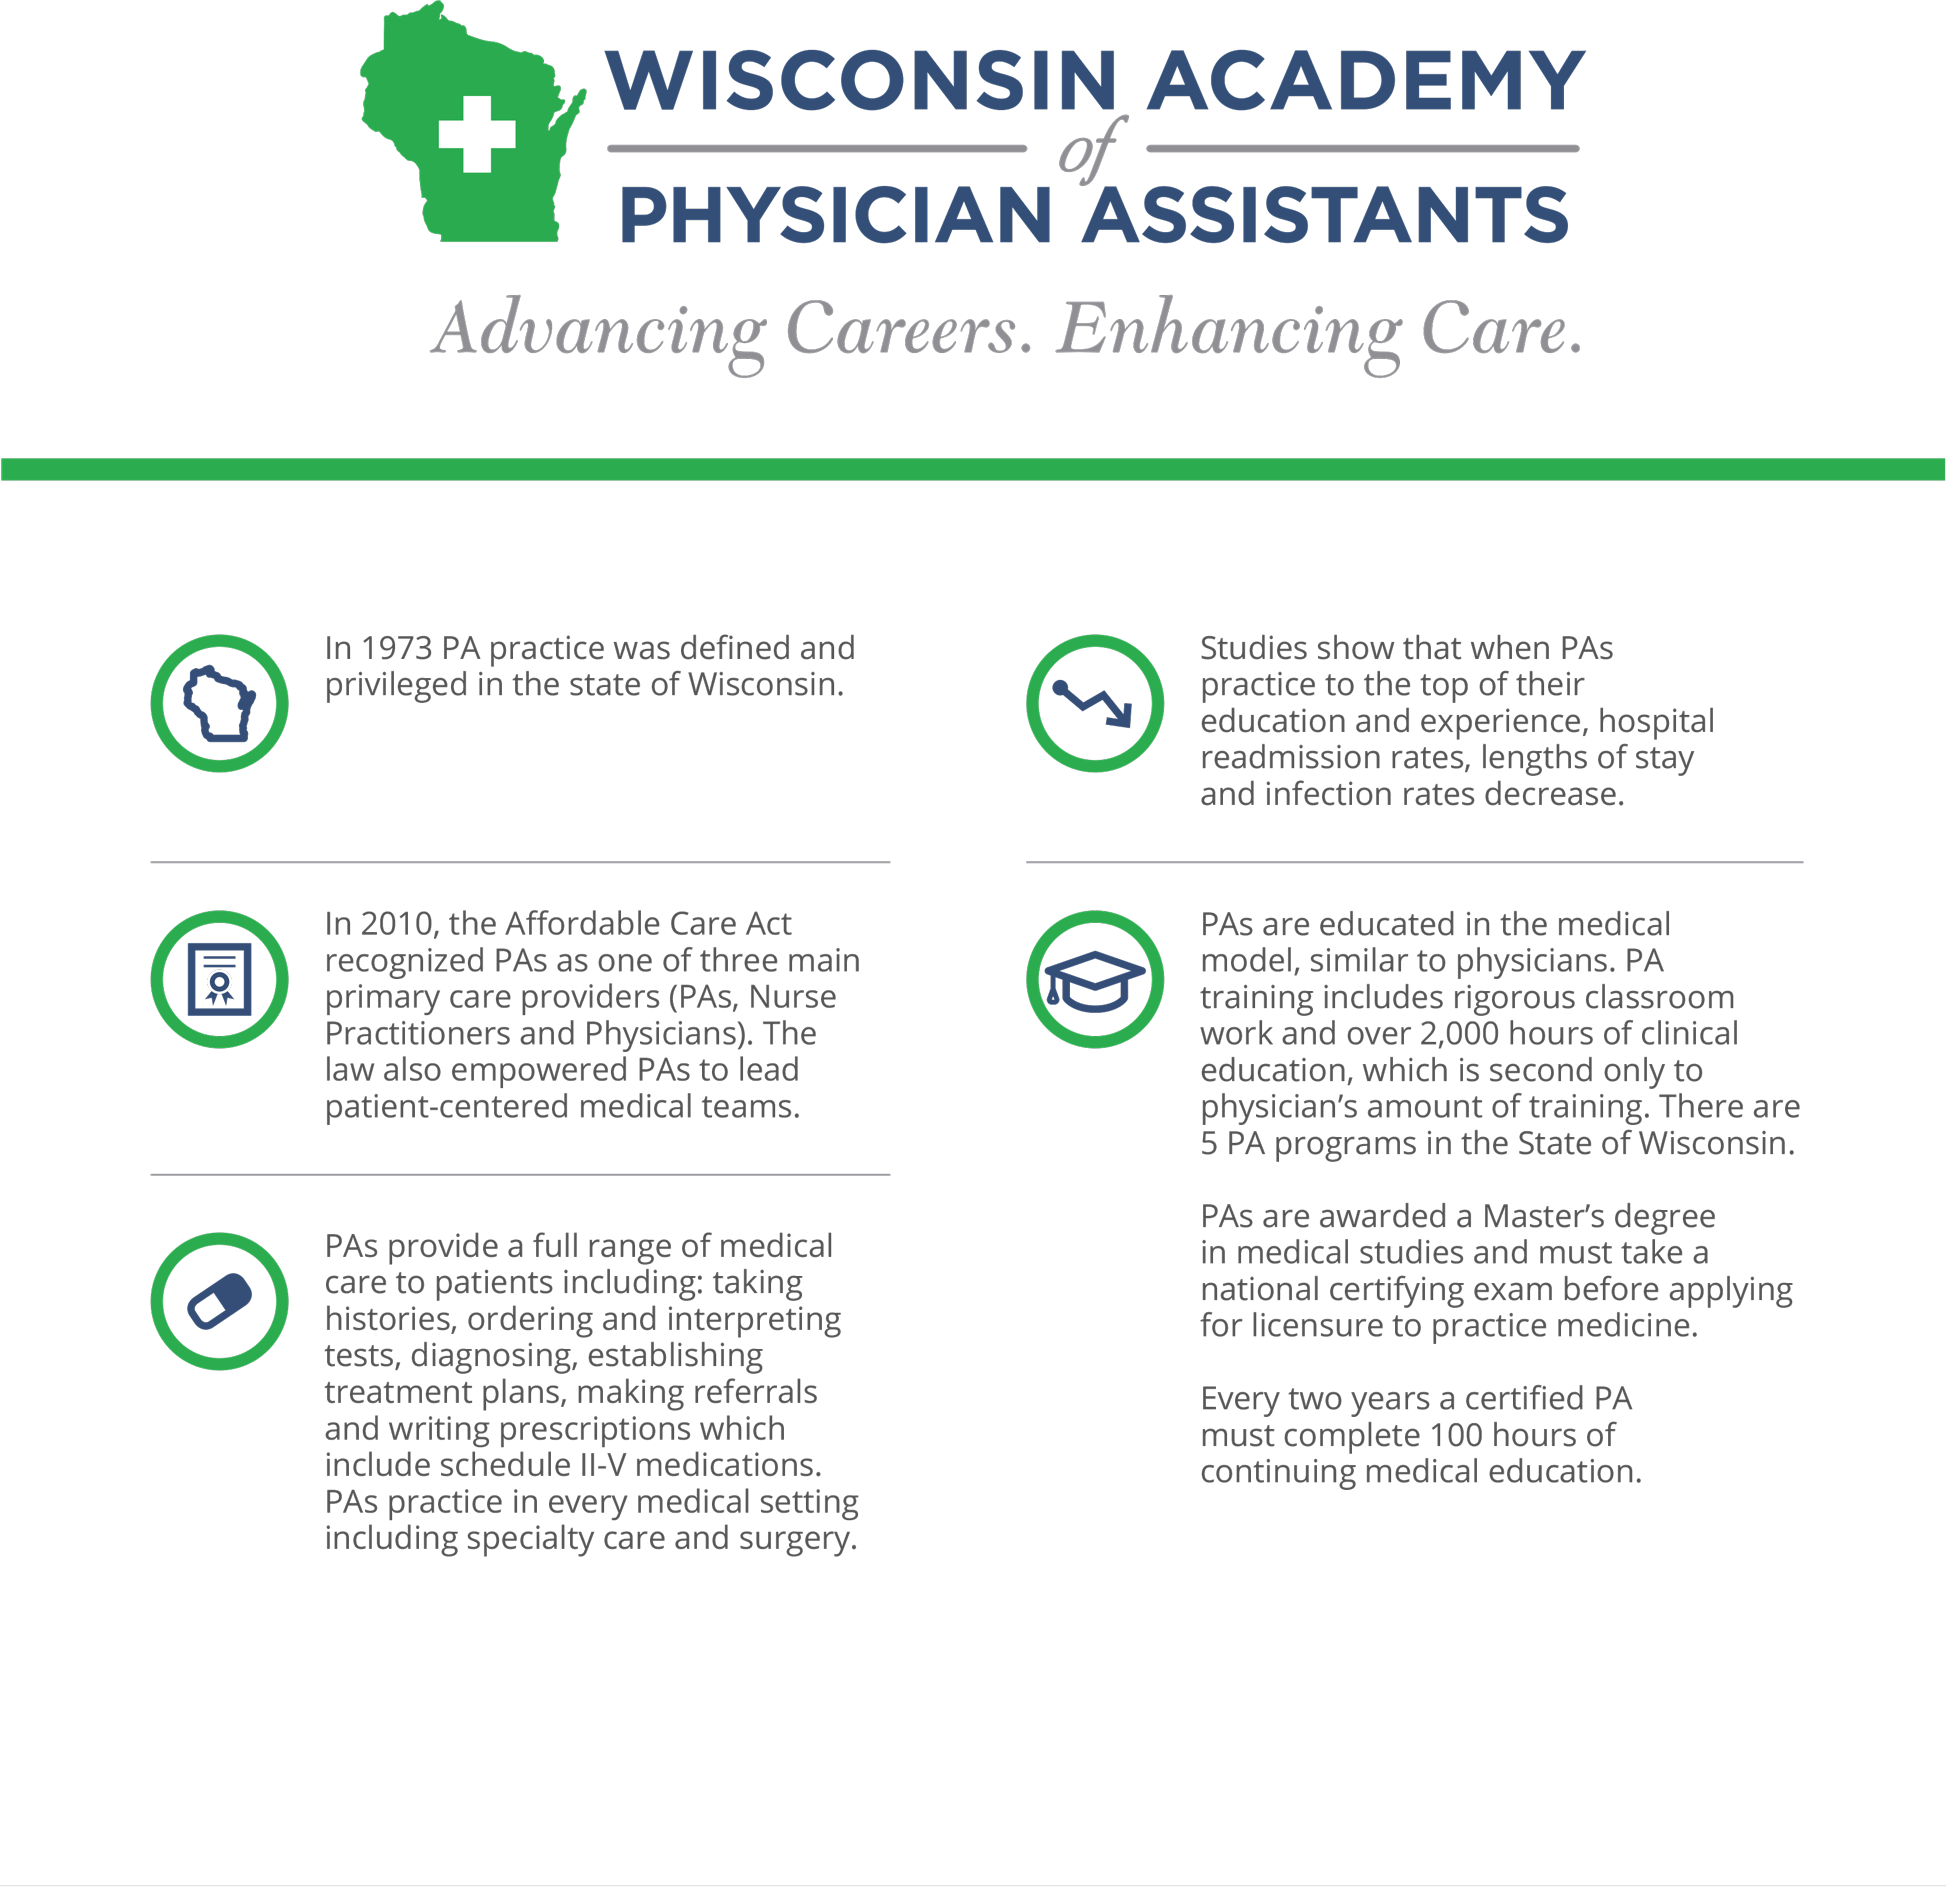 About PAs - Wisconsin Academy of Physician Assistants